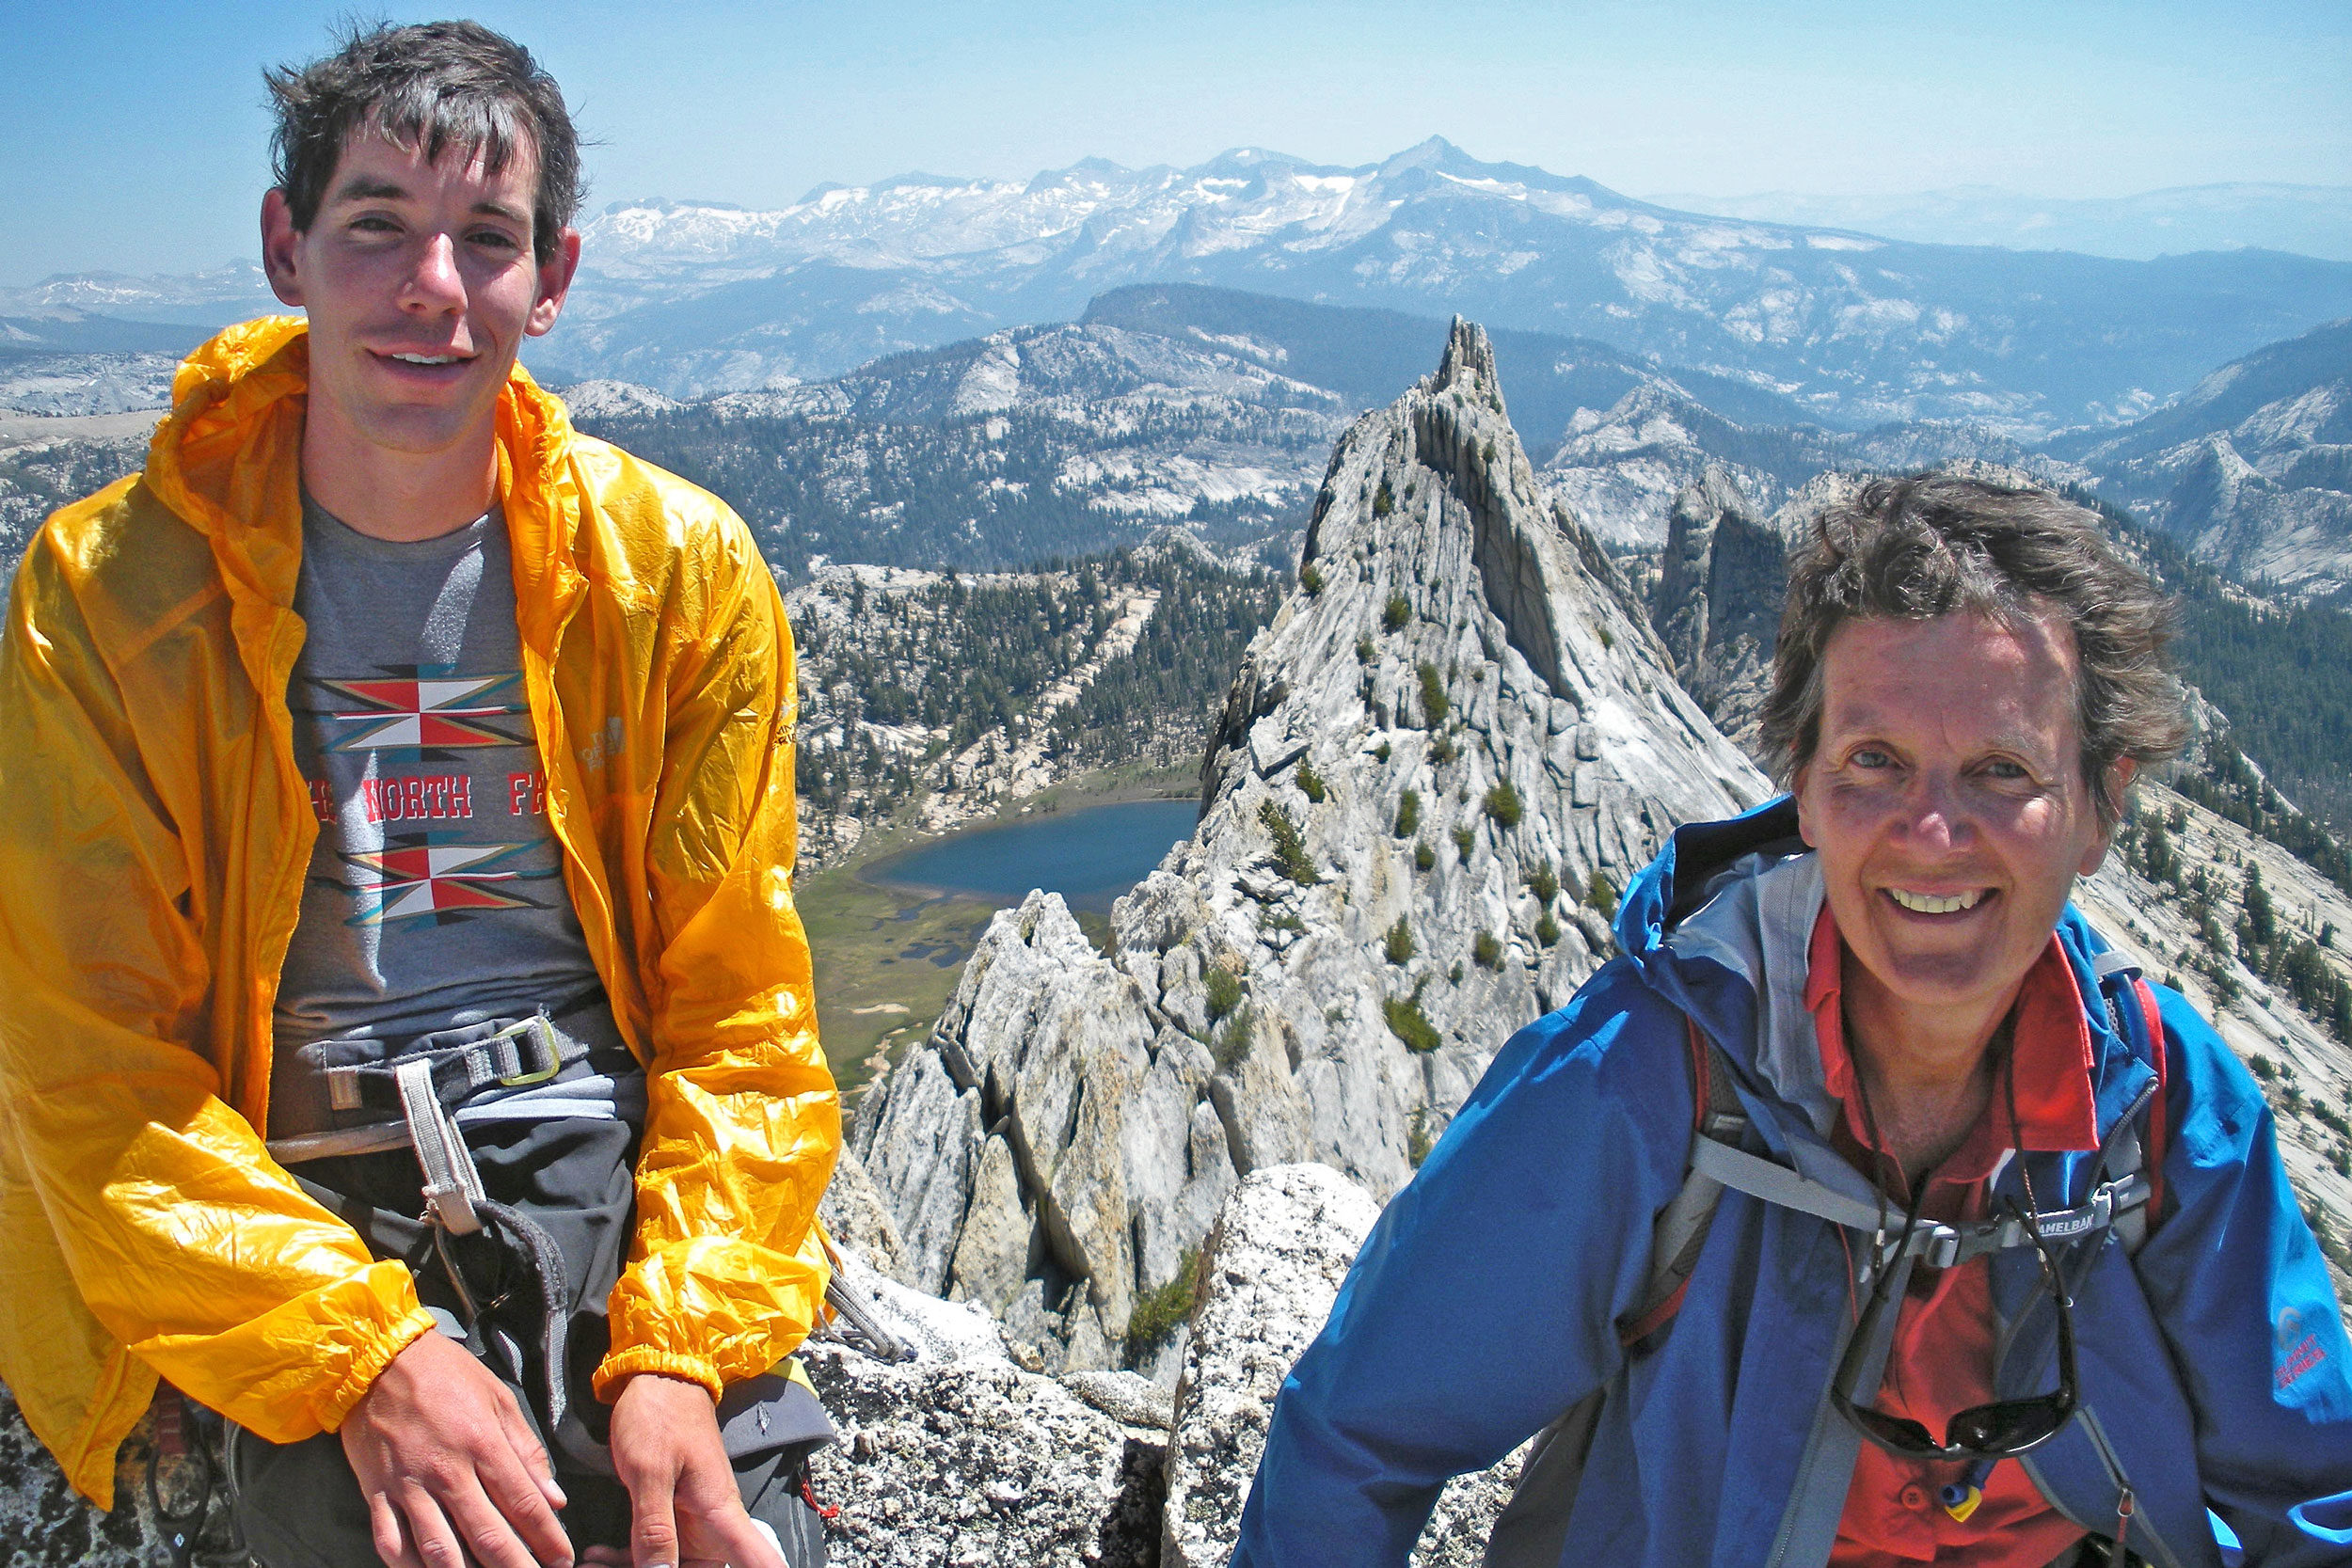 Alex Honnold's mom Dierdre Wolownick